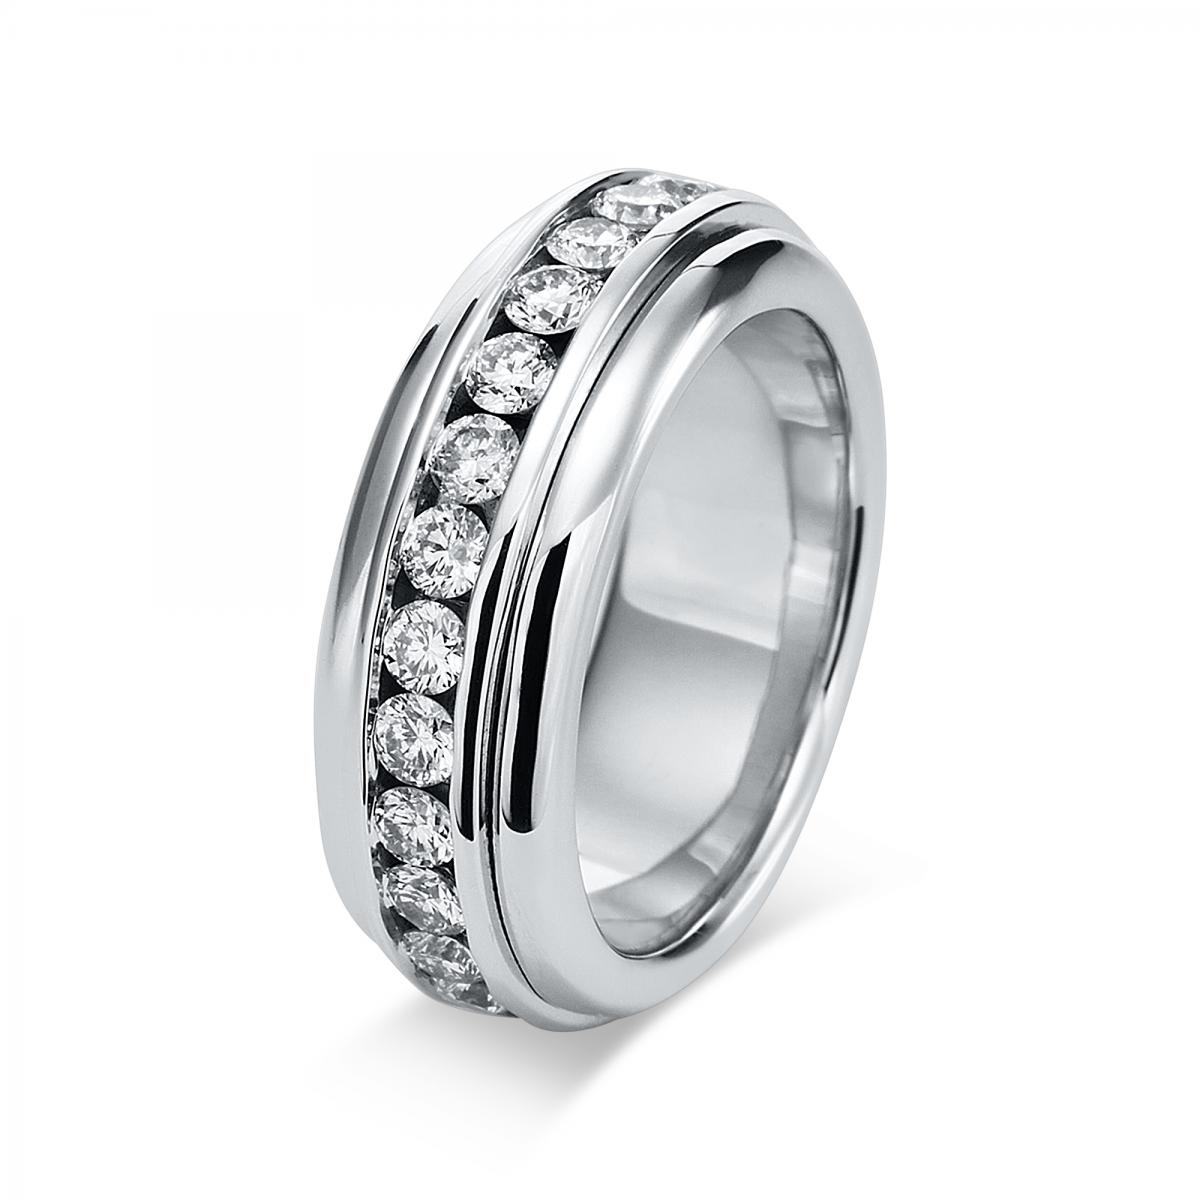 Ring 18 ct white gold with 27 brilliants ca. 2,04 ct, size 56